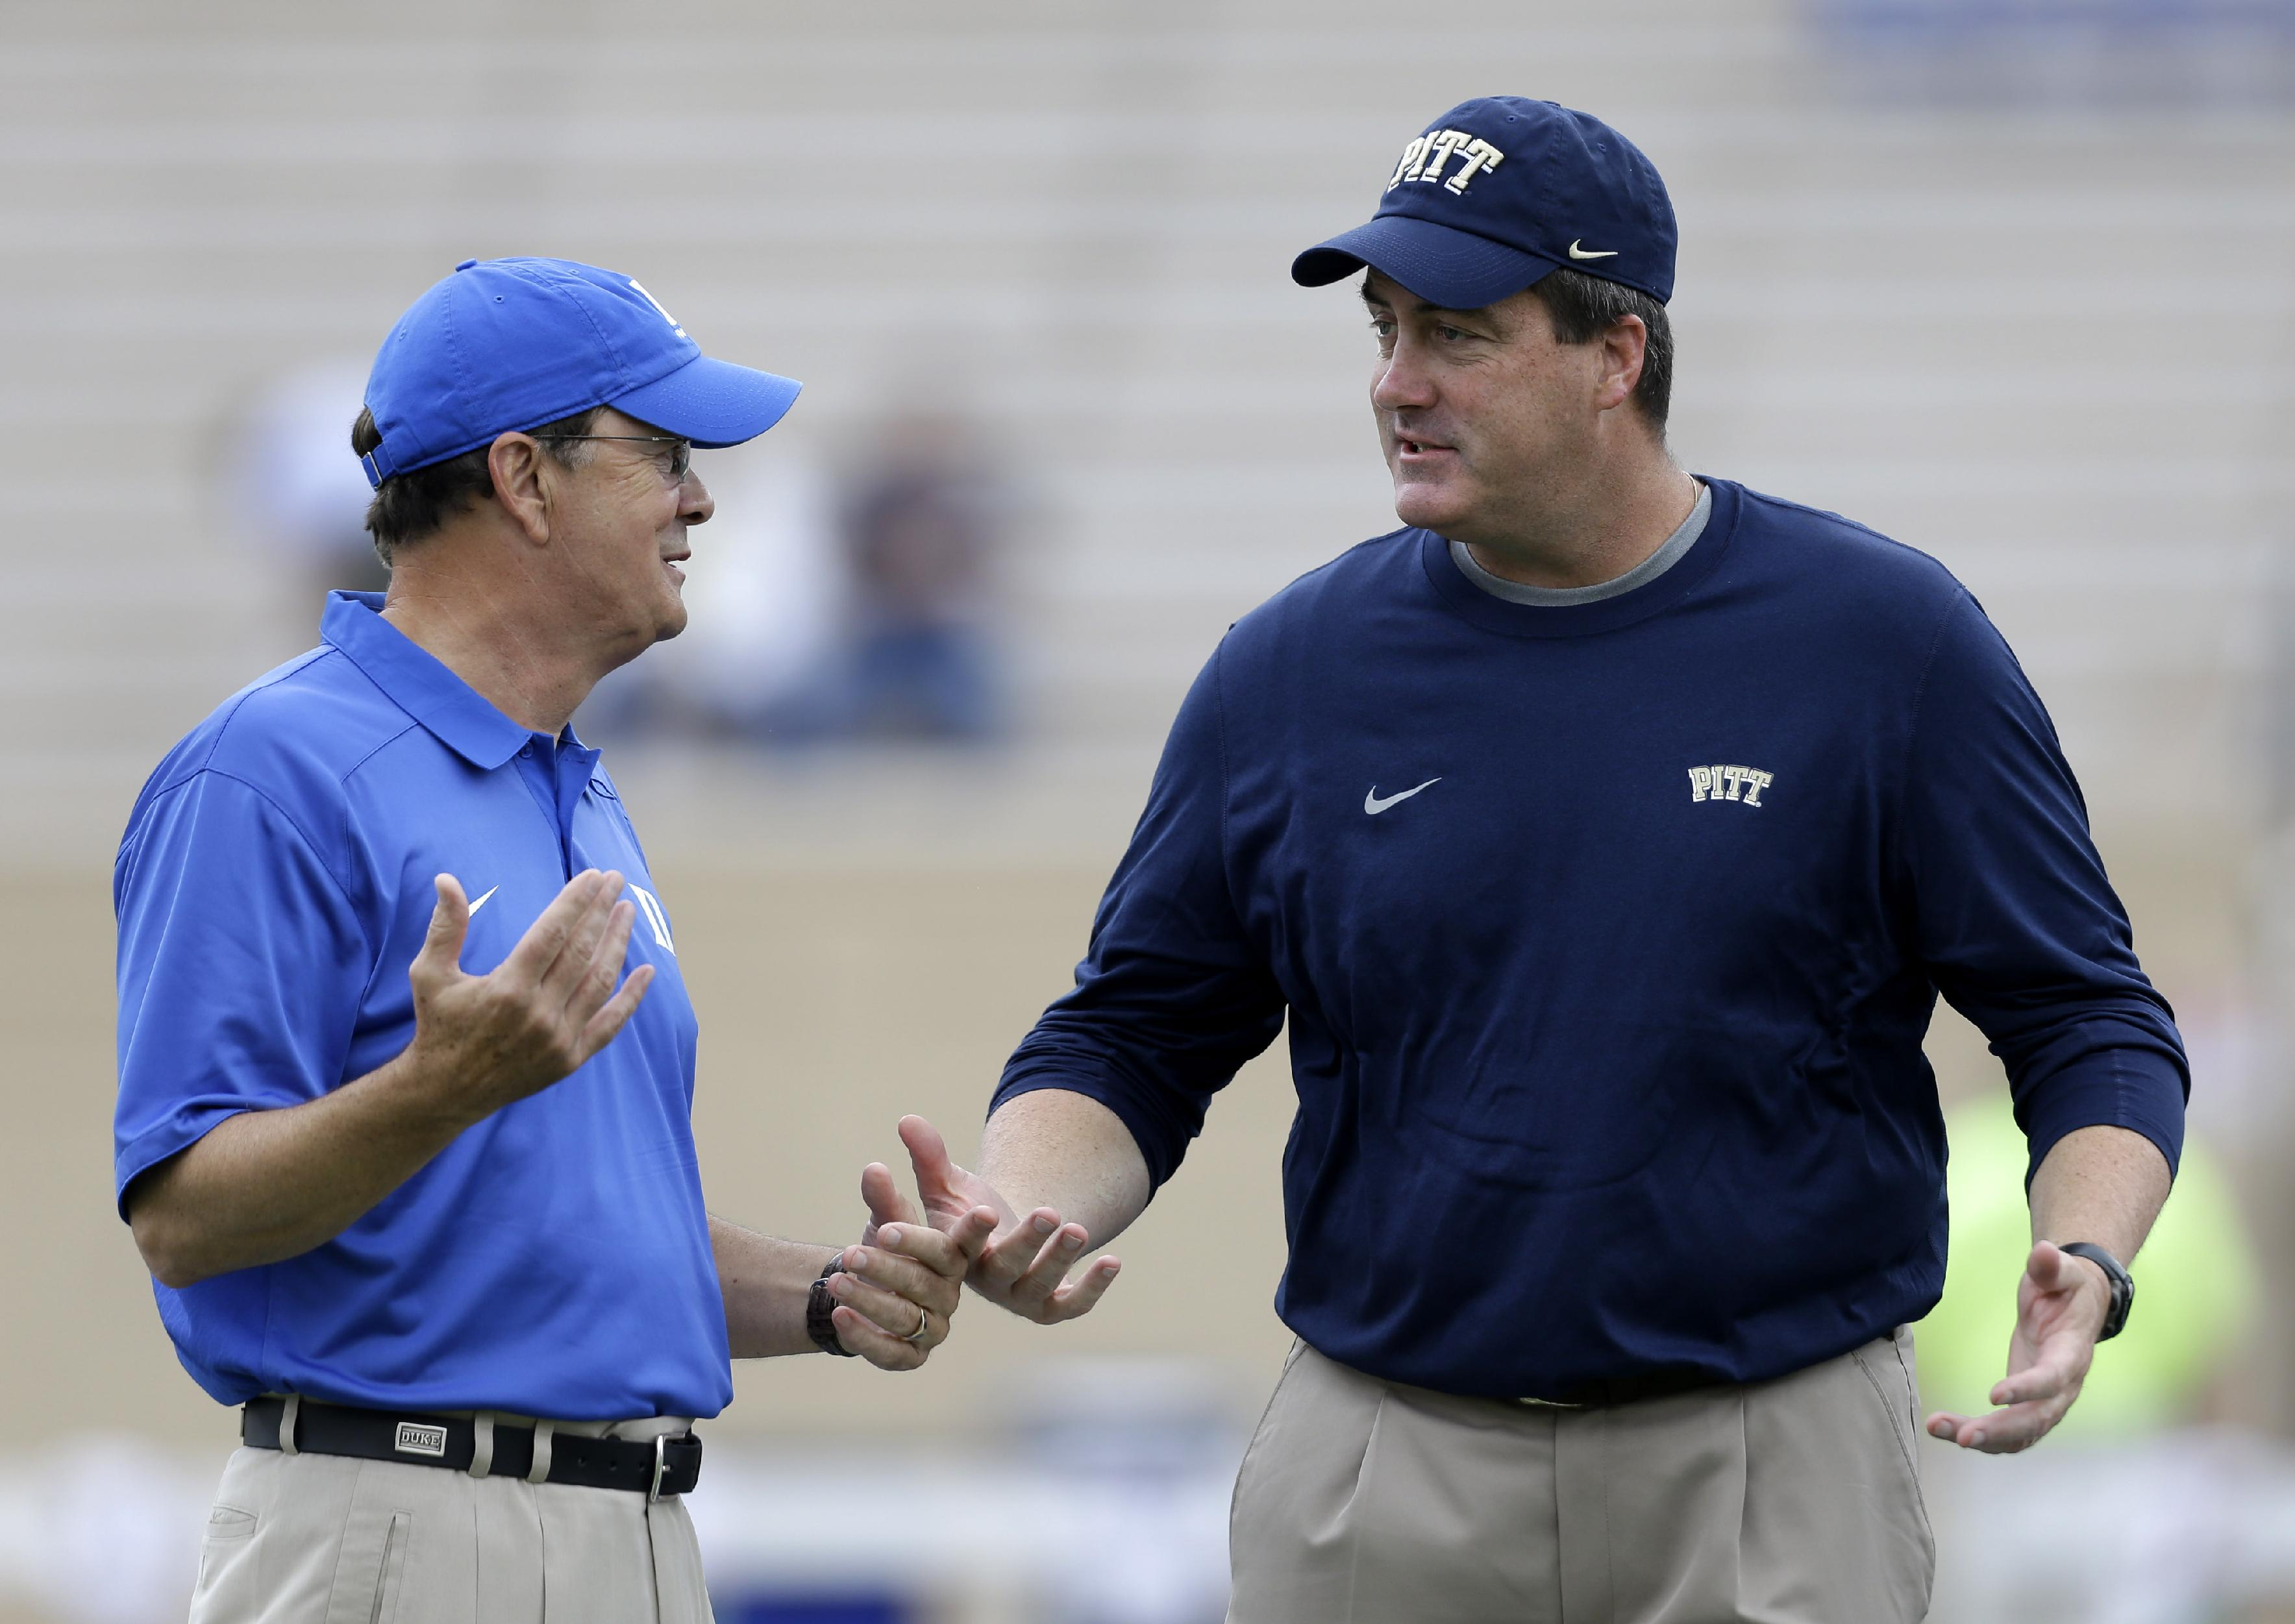 Duke coach David Cutcliffe, left, and Pittsburgh coach Paul Chryst speak prior to an NCAA college football game in Durham, N.C., Saturday, Sept. 21, 2013